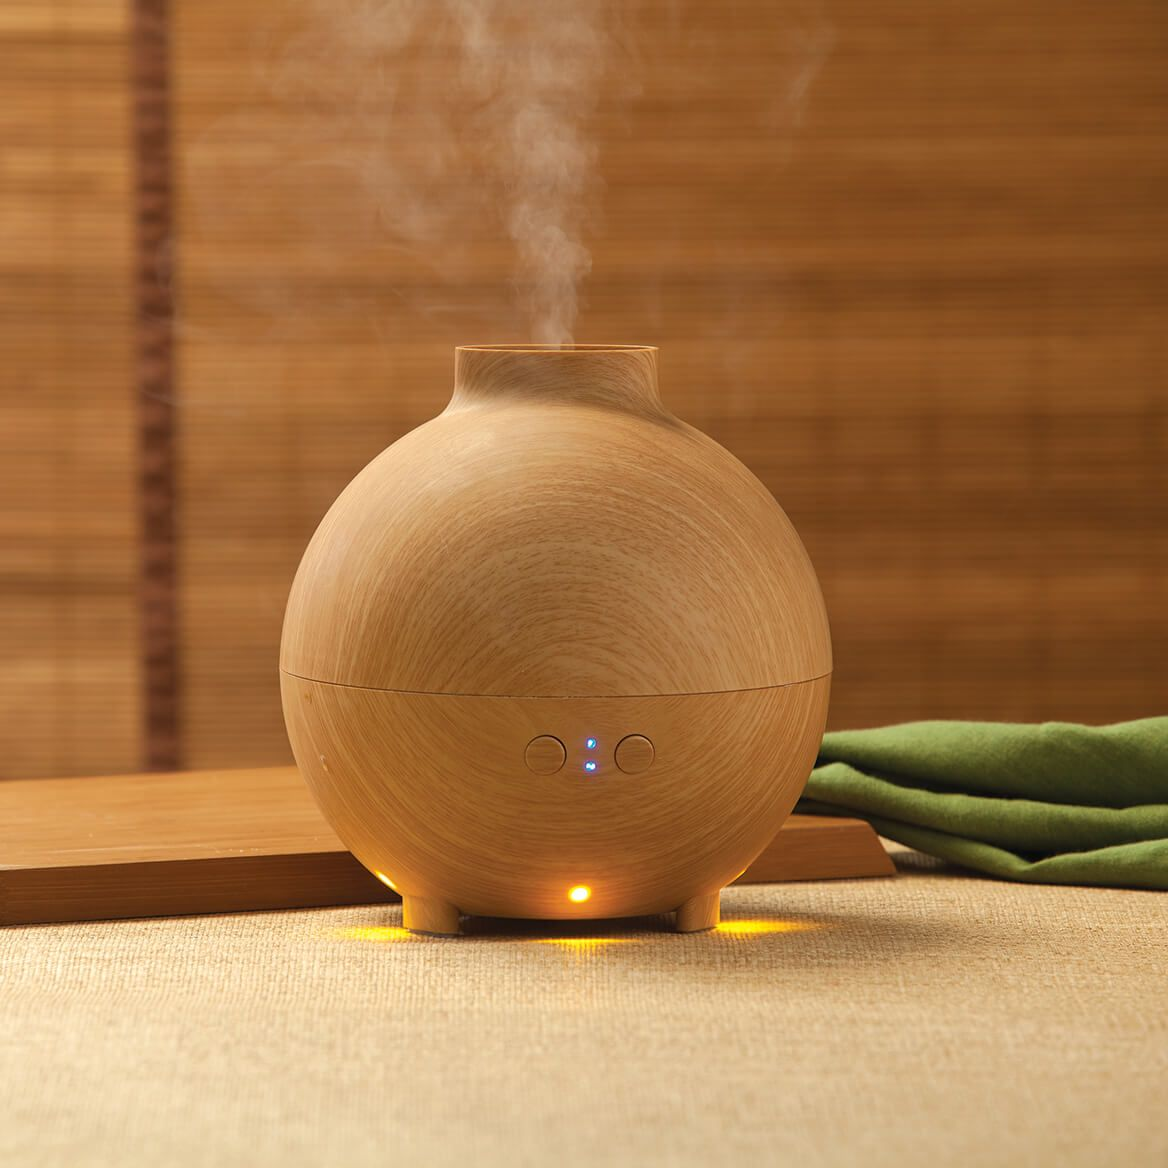 Lighted Essential Oil Diffuser & Humidifier - 600 ml-356189